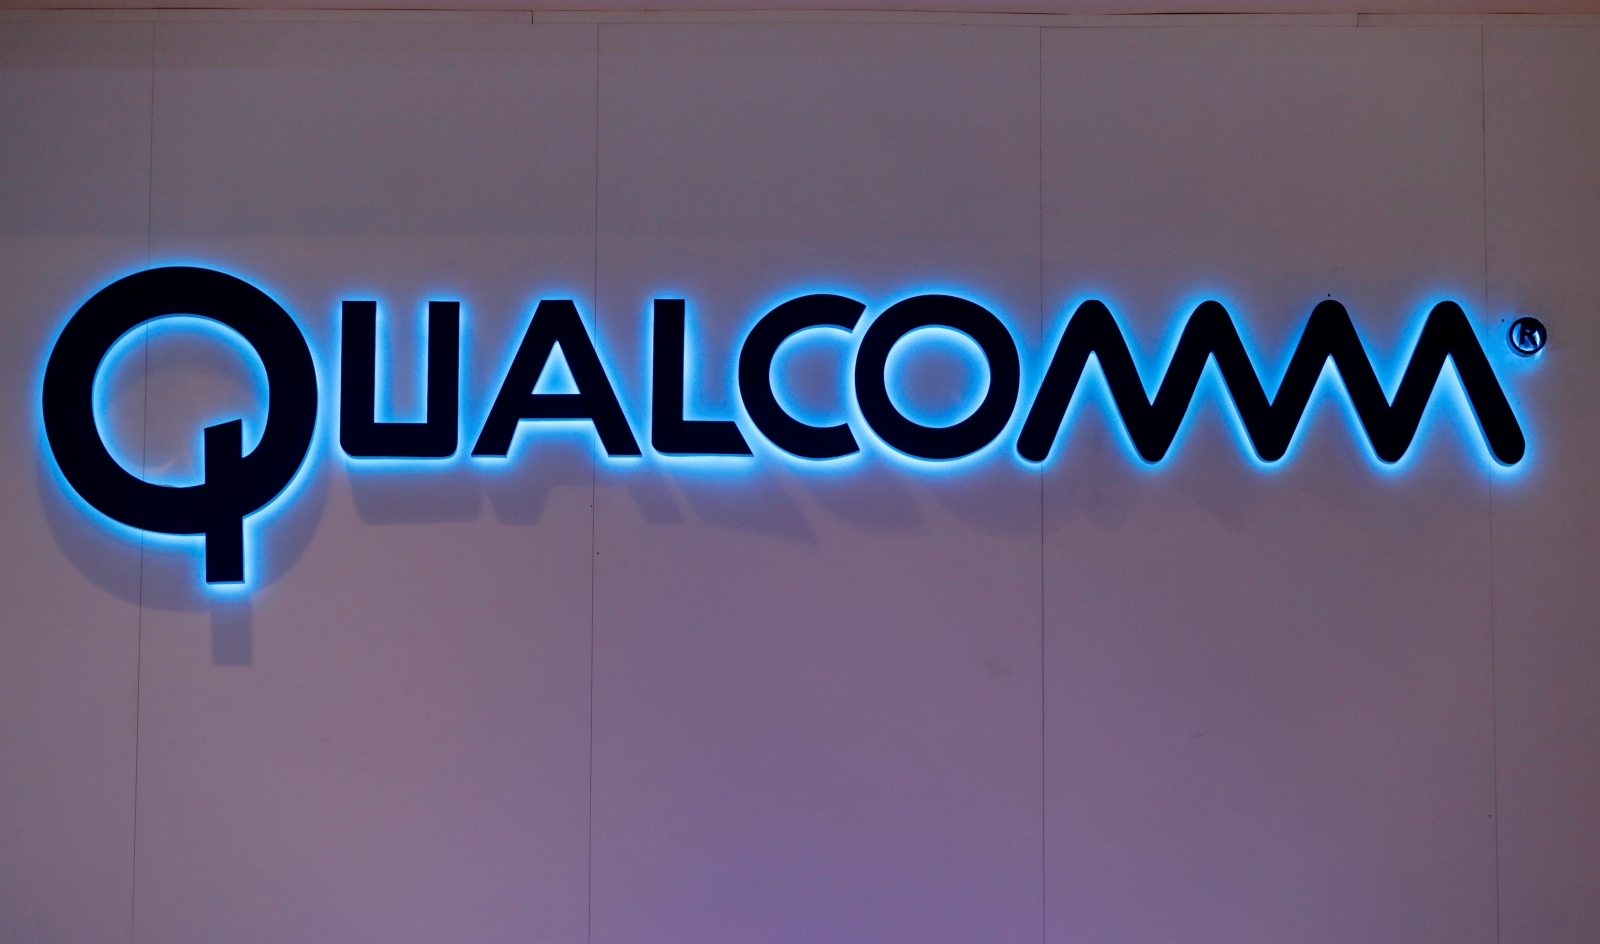 Qualcomm sues Apple over iPhone royalties